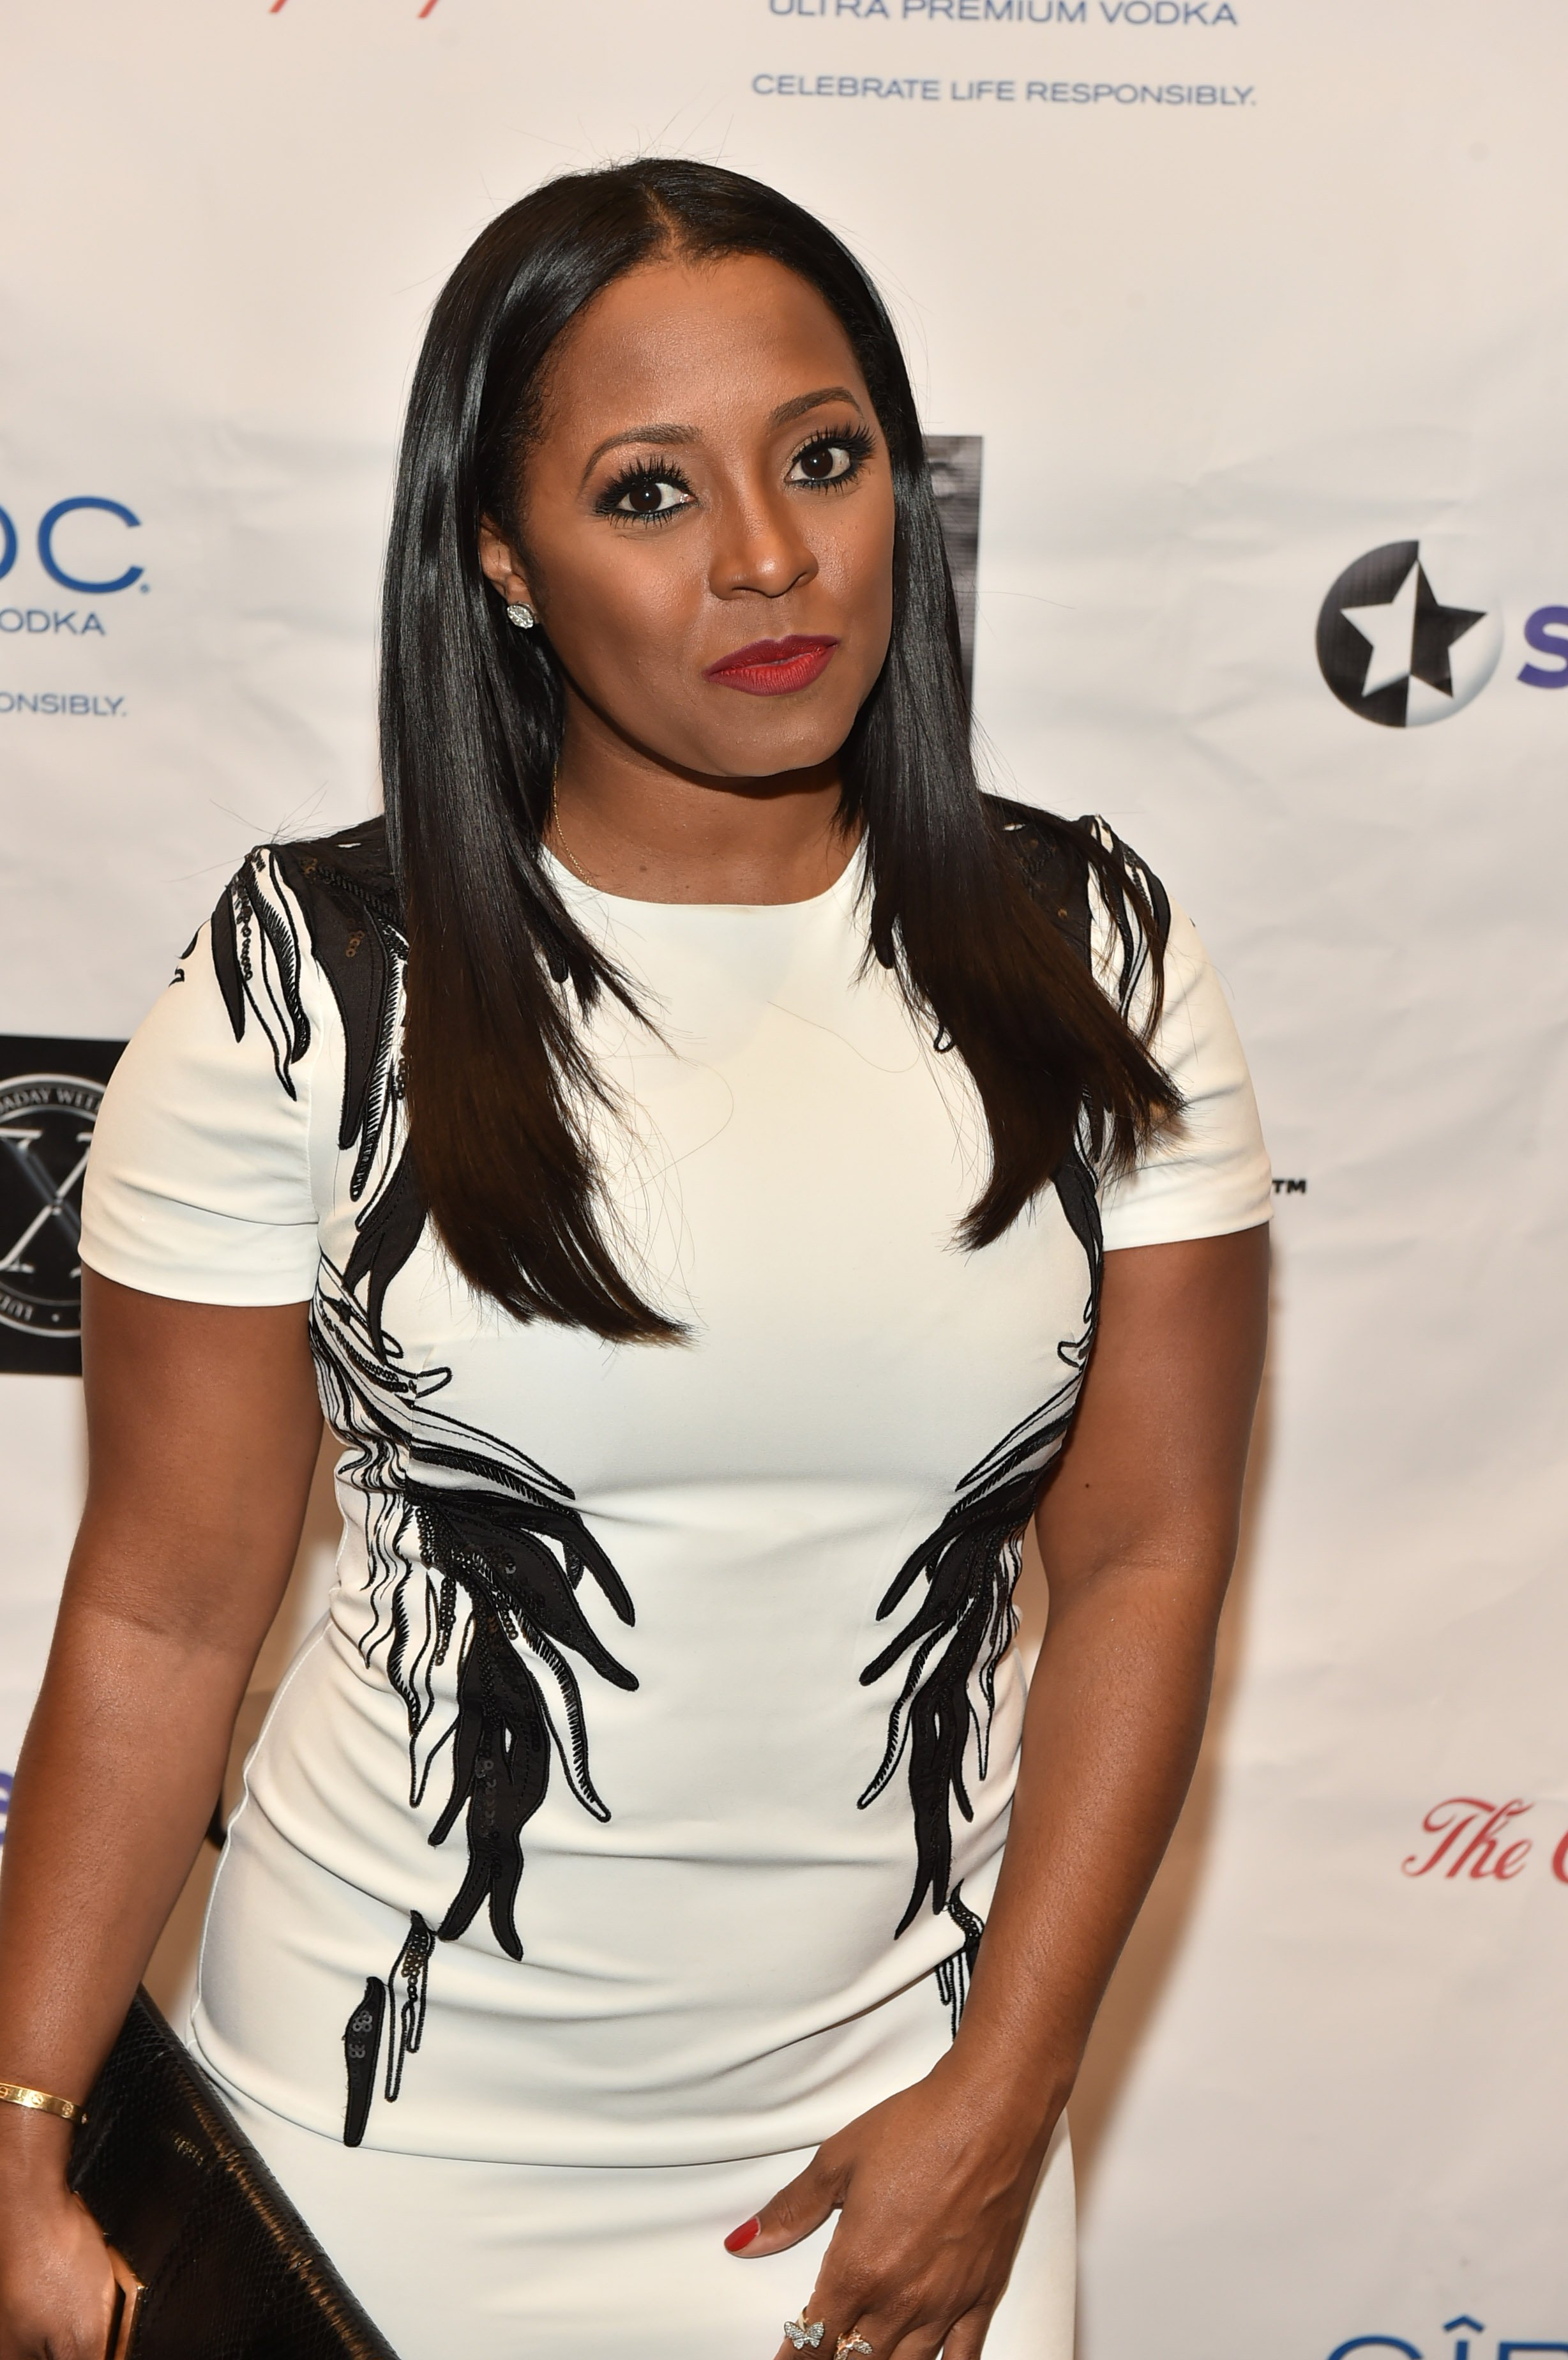 """Keshia Knight Pulliam poses at """"The Red Napkin"""" dinner at the Coca-Cola Headquarters on September 4, 2015 in Atlanta, Georgia. 